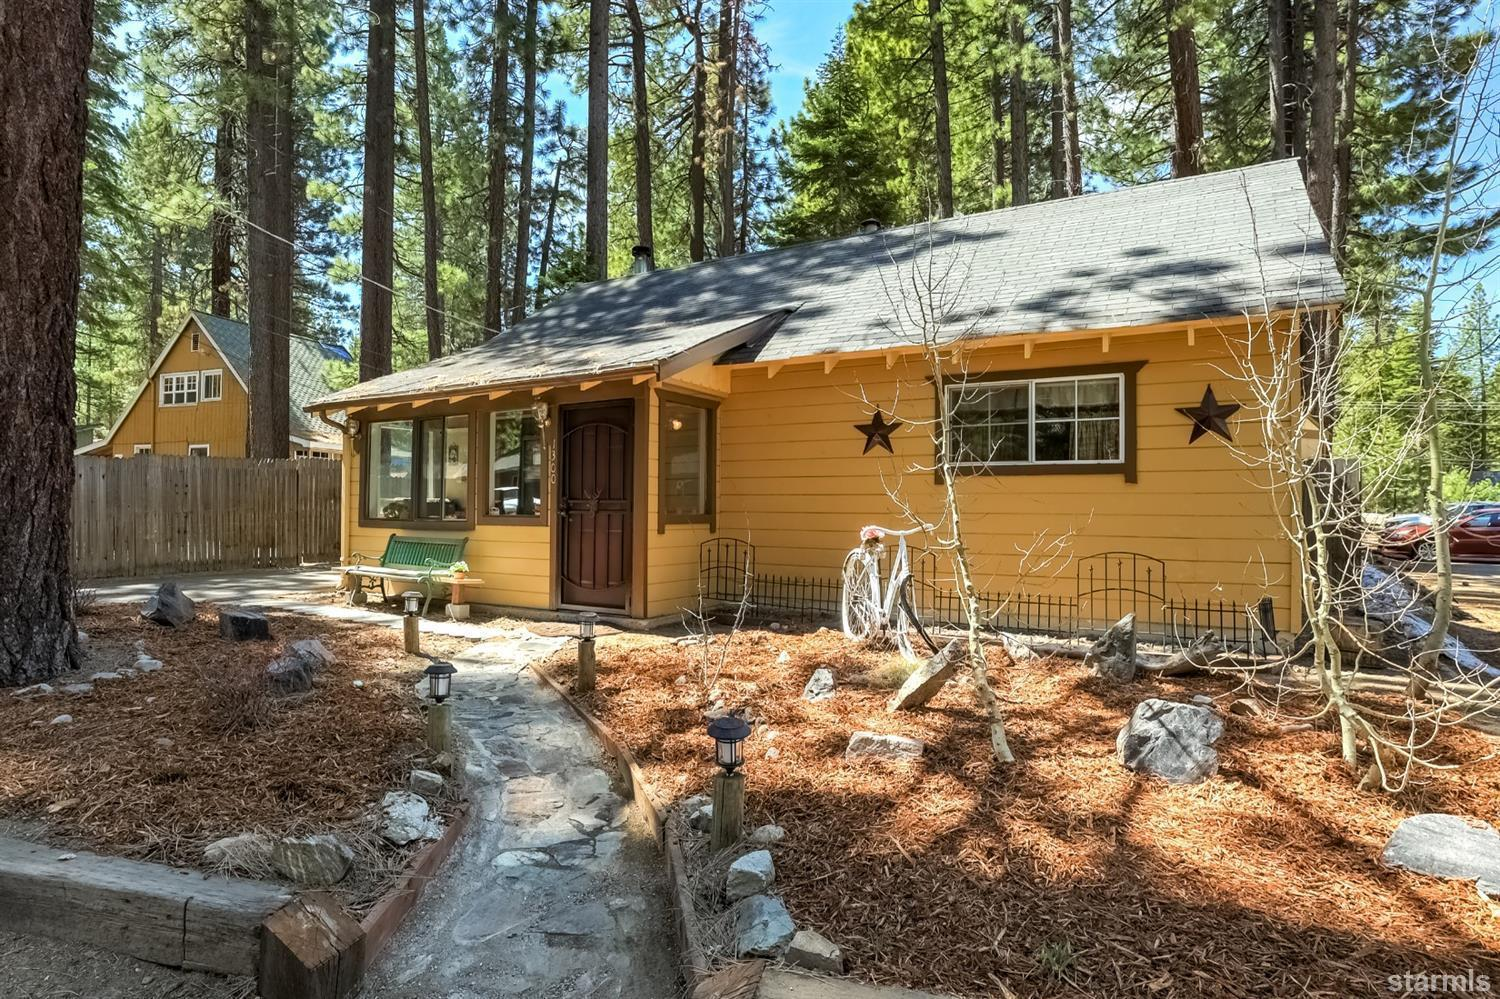 1300 Kyburz Avenue, 134172, South Lake Tahoe, Single-Family Home,  for sale, Brandie Griffith, Realty World - Lake Tahoe